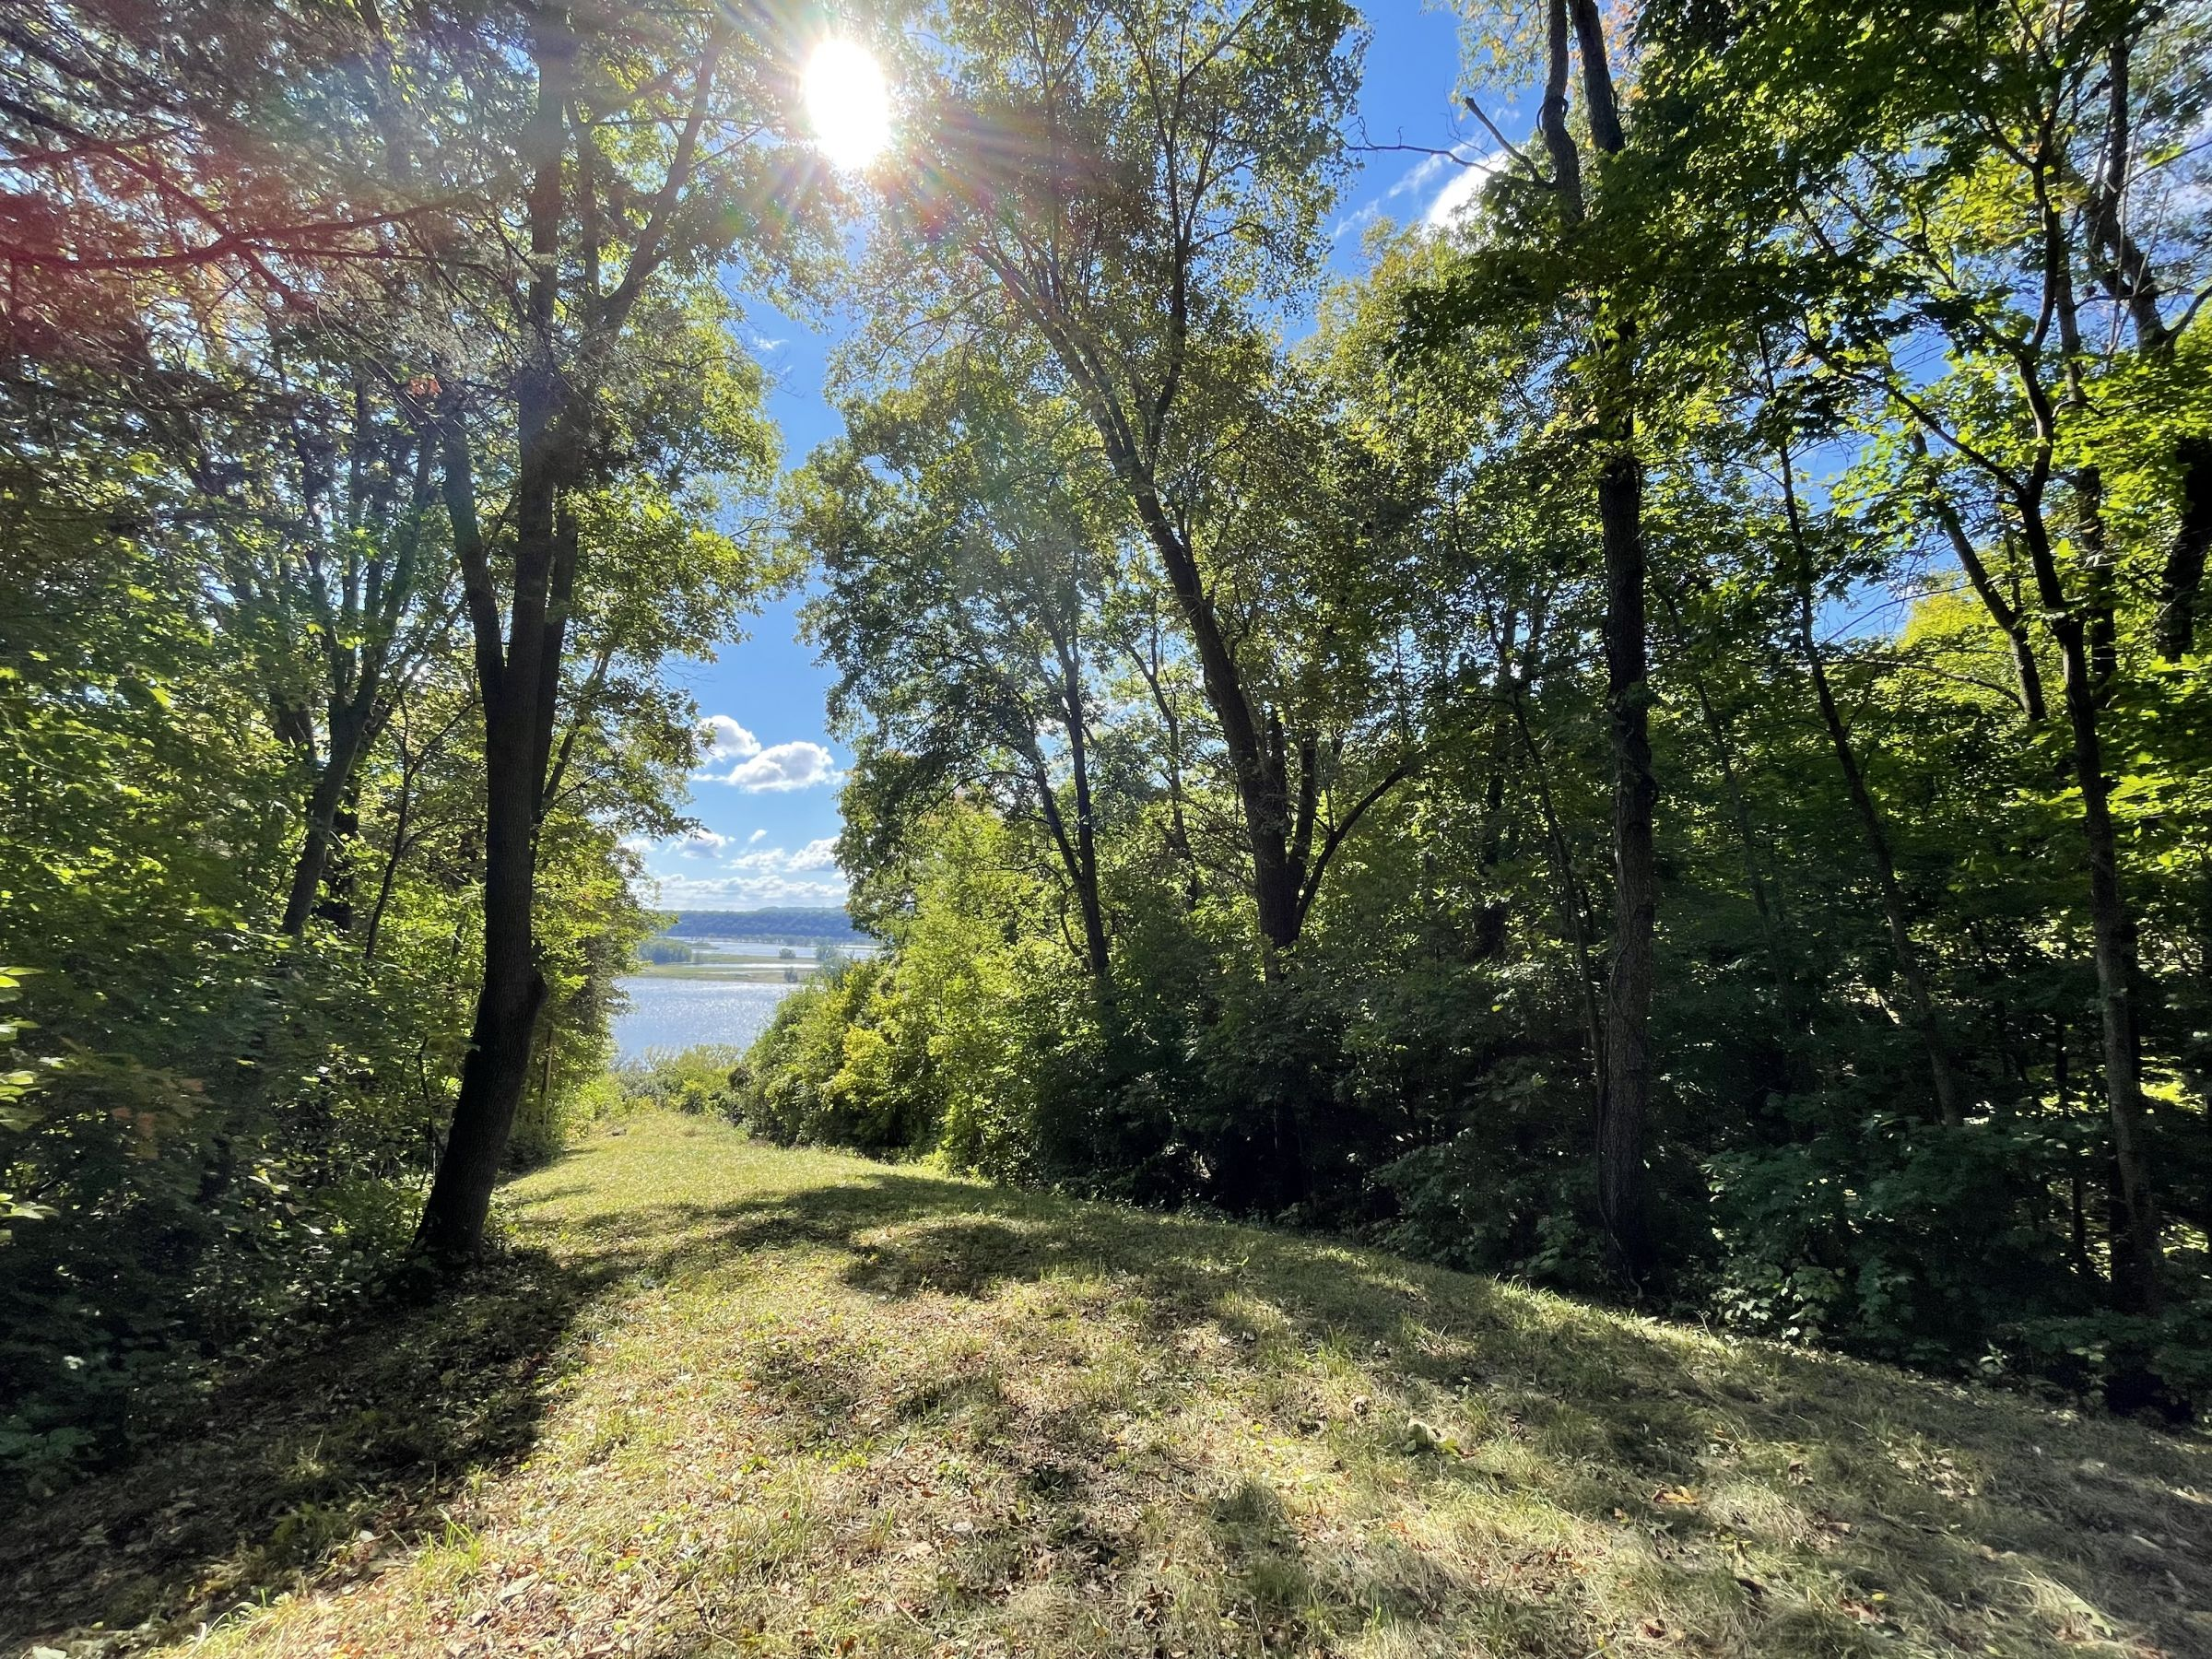 land-grant-county-wisconsin-4-acres-listing-number-15772-0-2021-09-23-020449.JPG